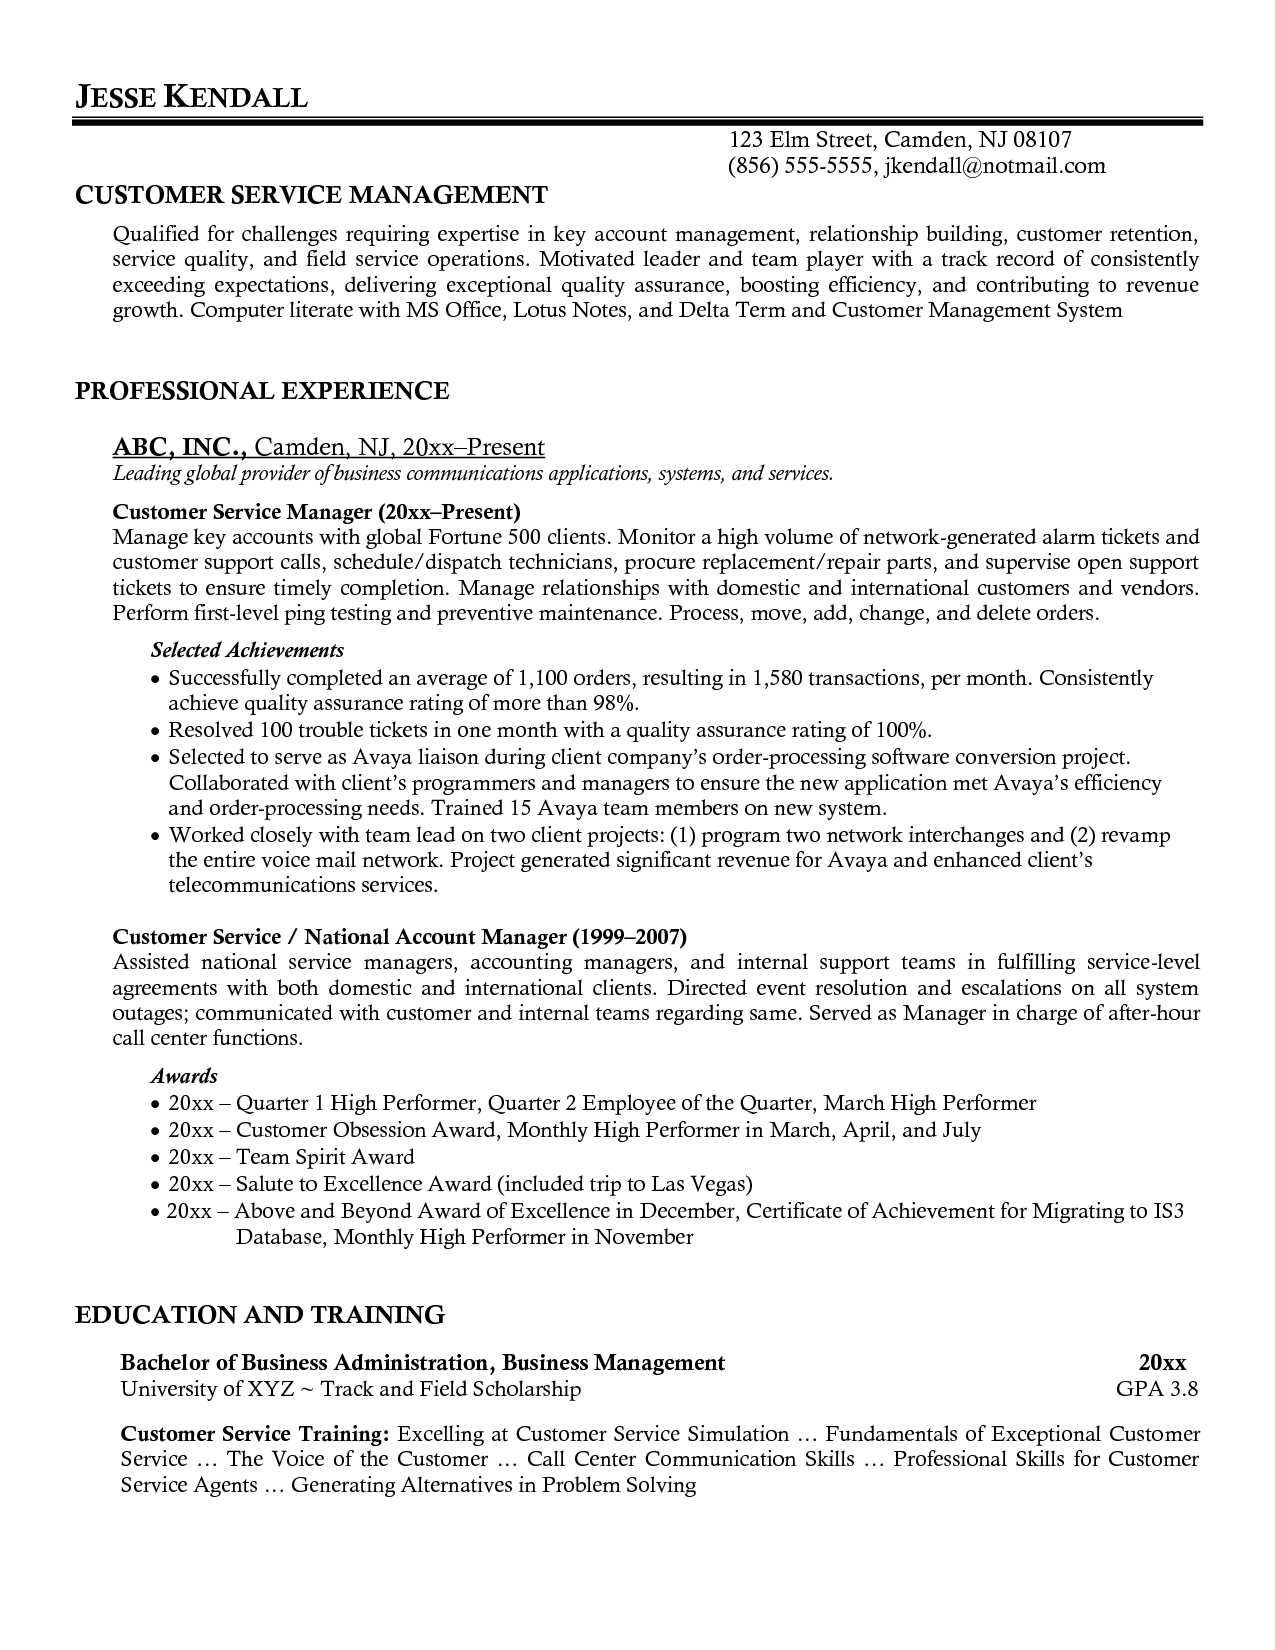 Resume Template For Customer Service Customer Service Manager Resume Http Resumecareer